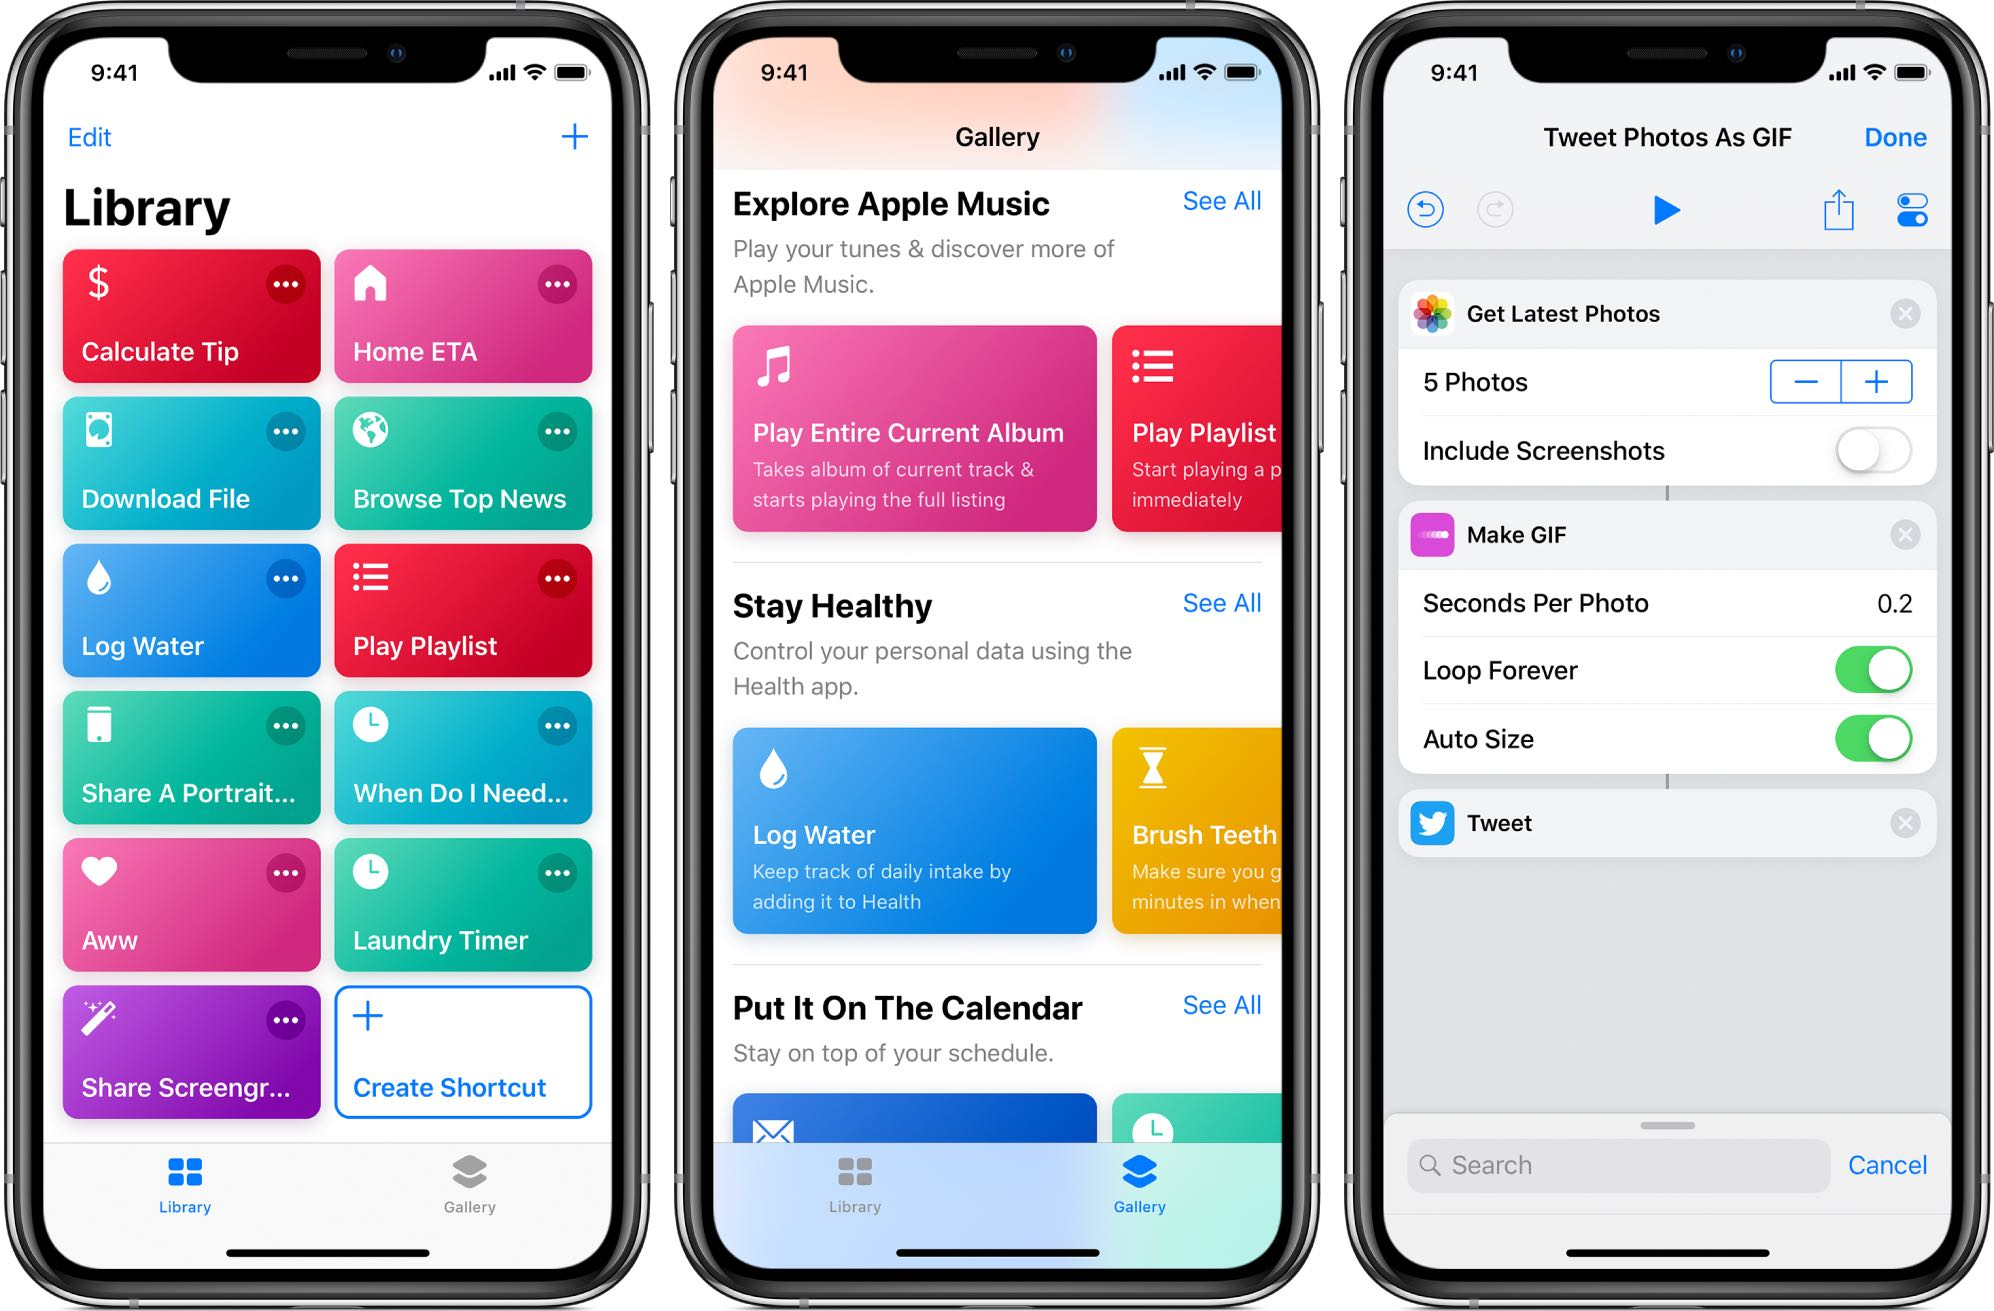 Here are a few ways you can find some pretty great shortcuts for your iPhone and iPad